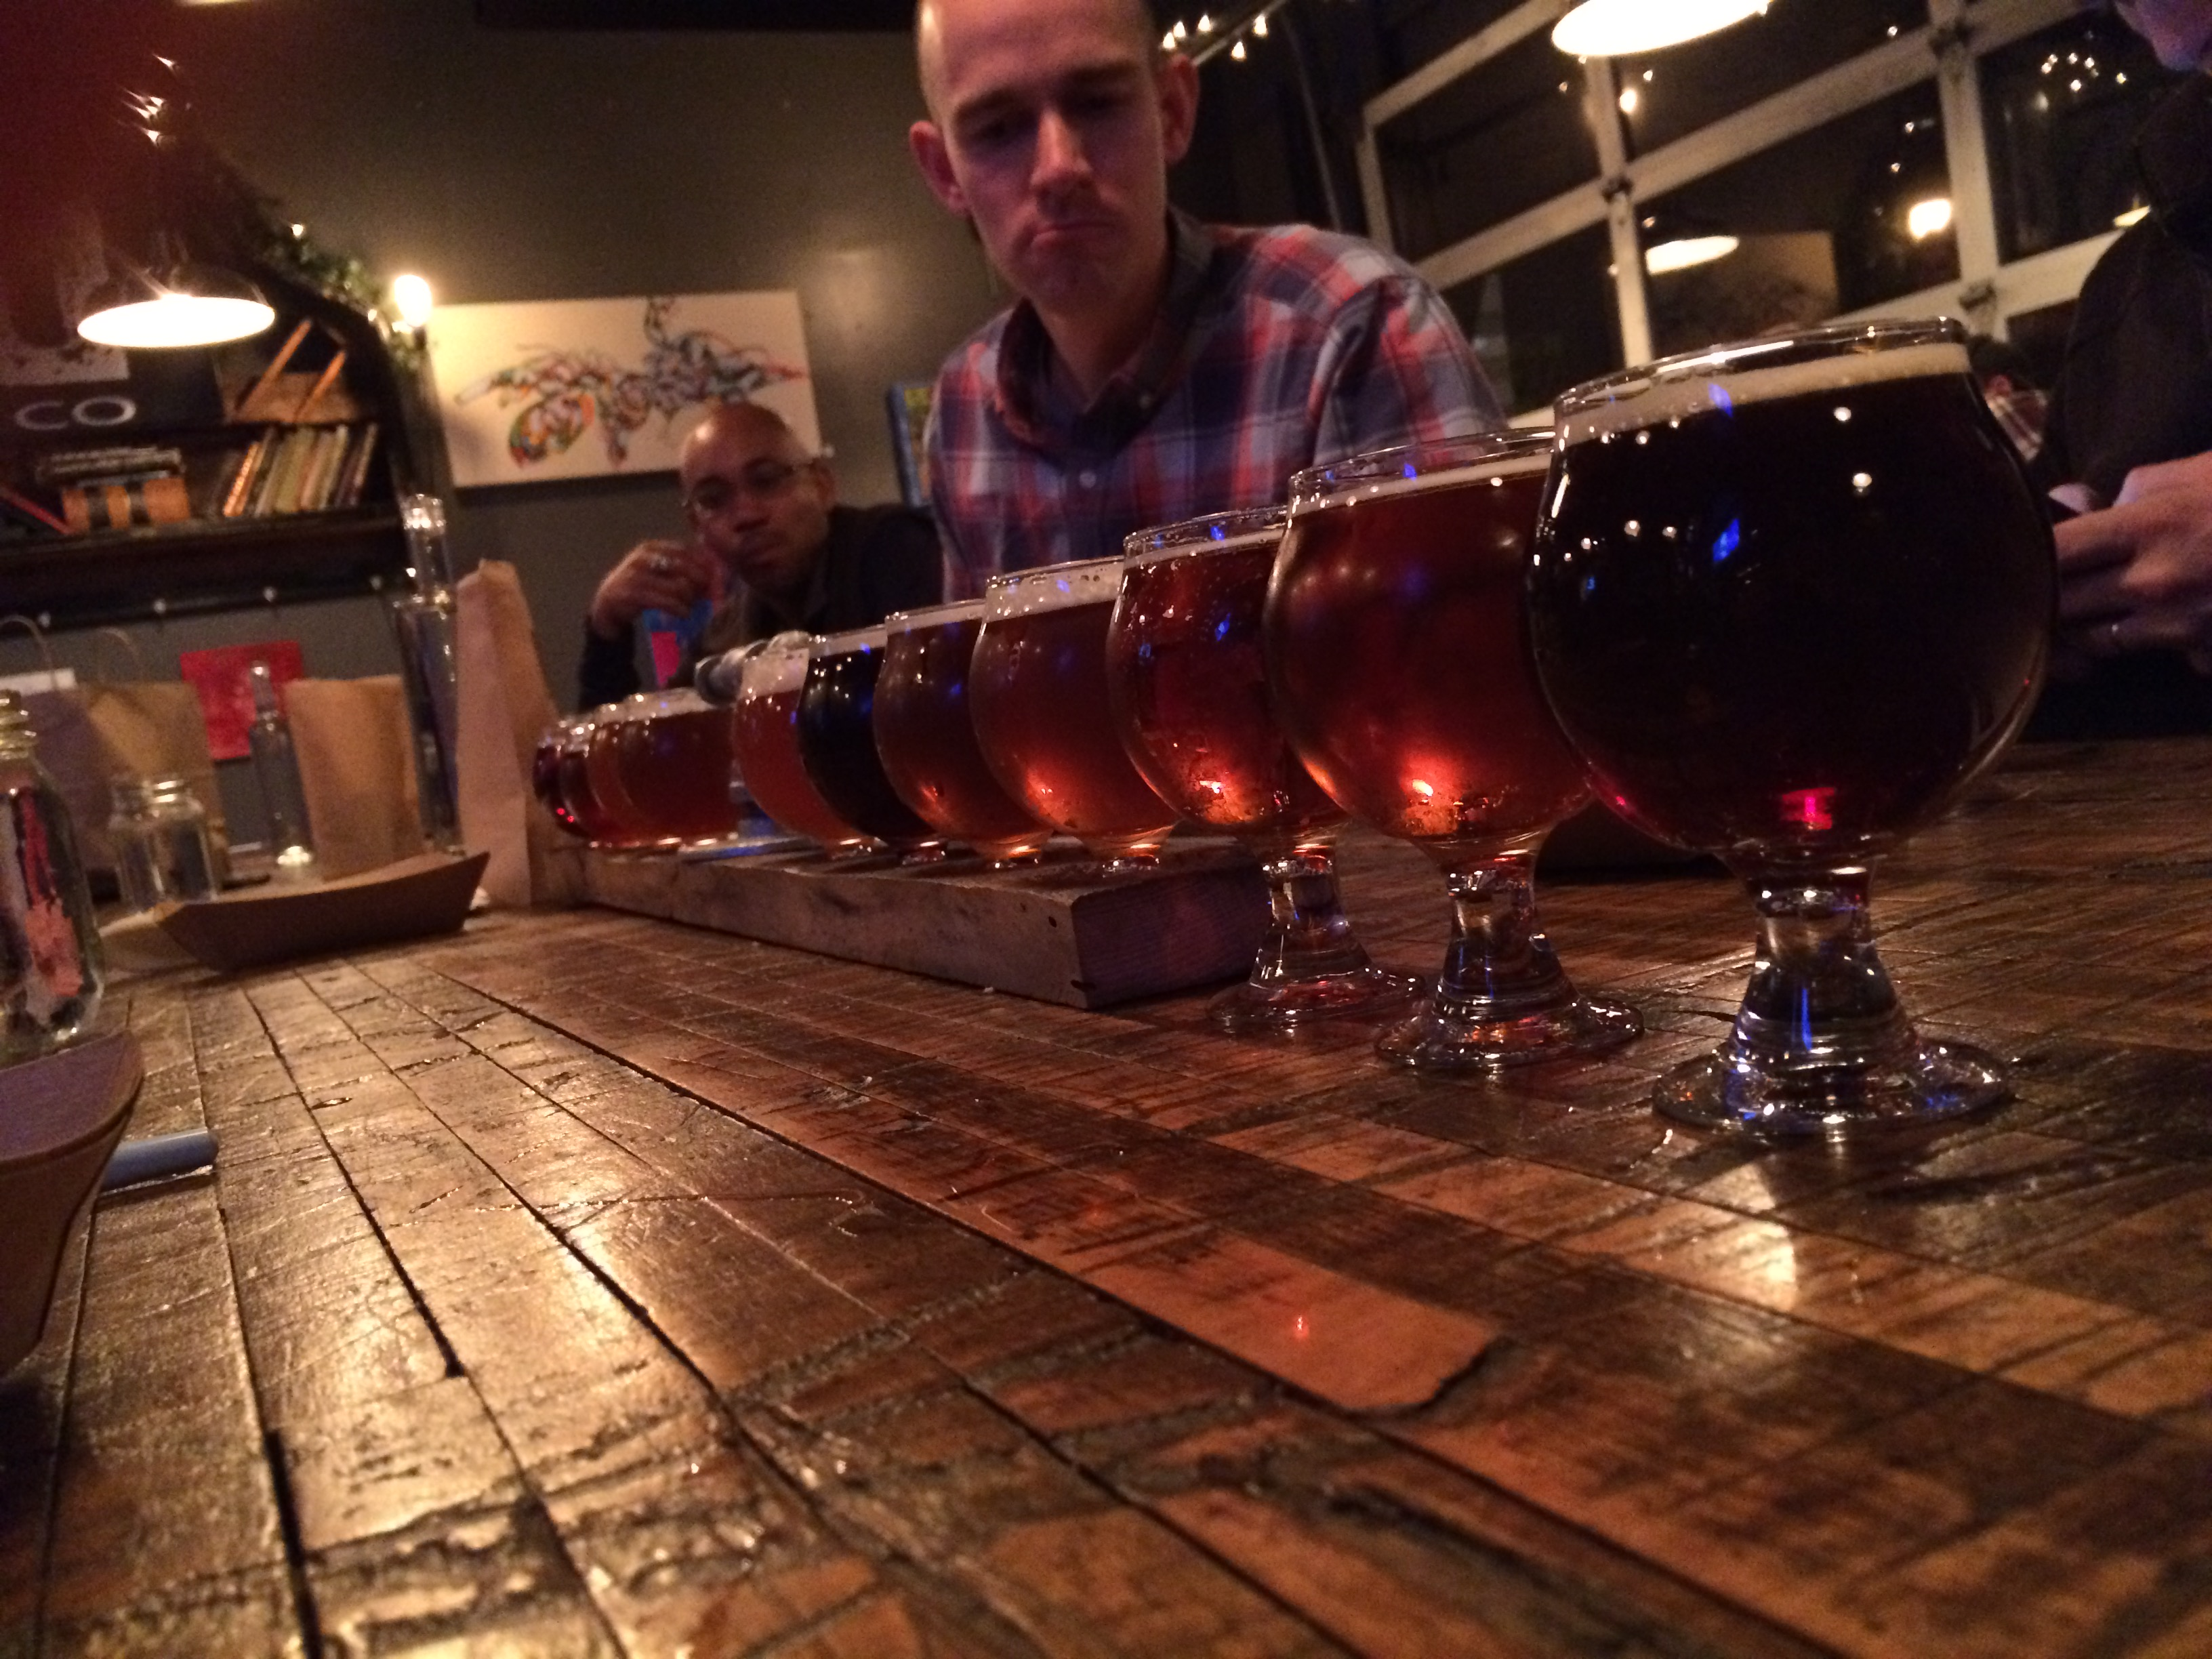 beer-the_crooked_stave-denver-co-bar-microbrewery-tf_tour__12_